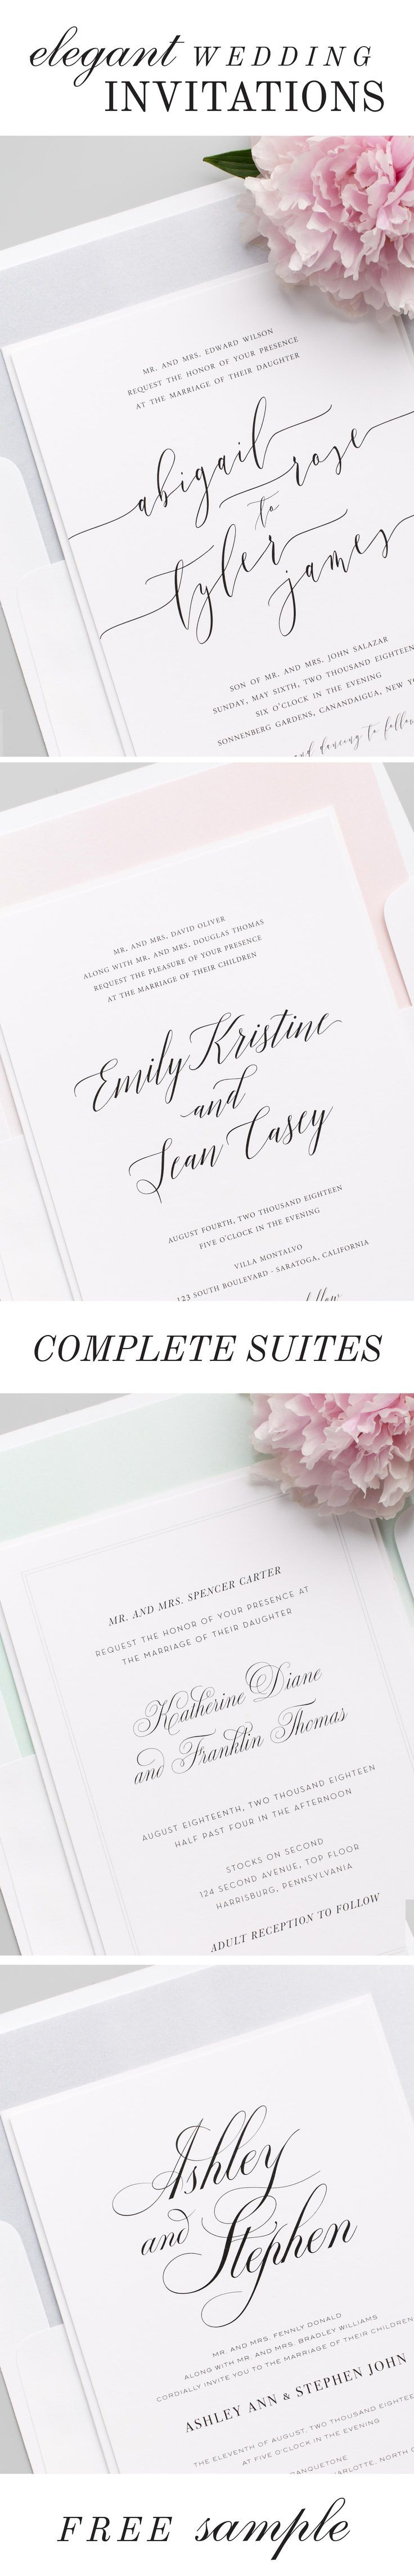 Click to shop over 100 gorgeous wedding invitations styled to perfection, featuring elegant calligraphy, customizable envelope liners, belly bands and more. Each design features a full suite of matching collection items to carry your stationery theme thro